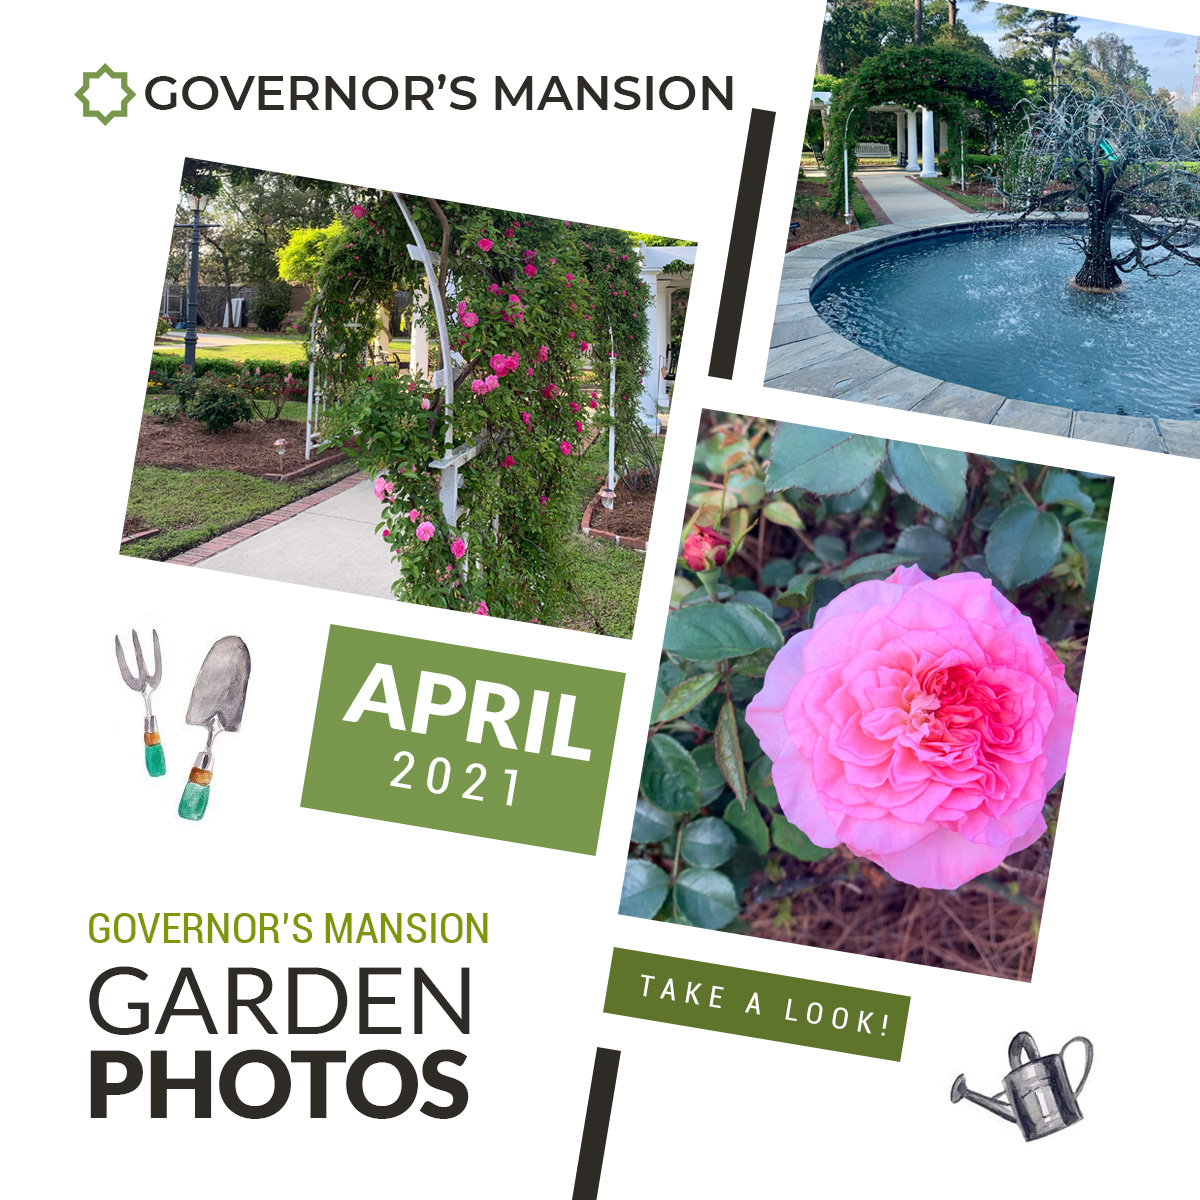 The Governor's Mansion: Garden Photos